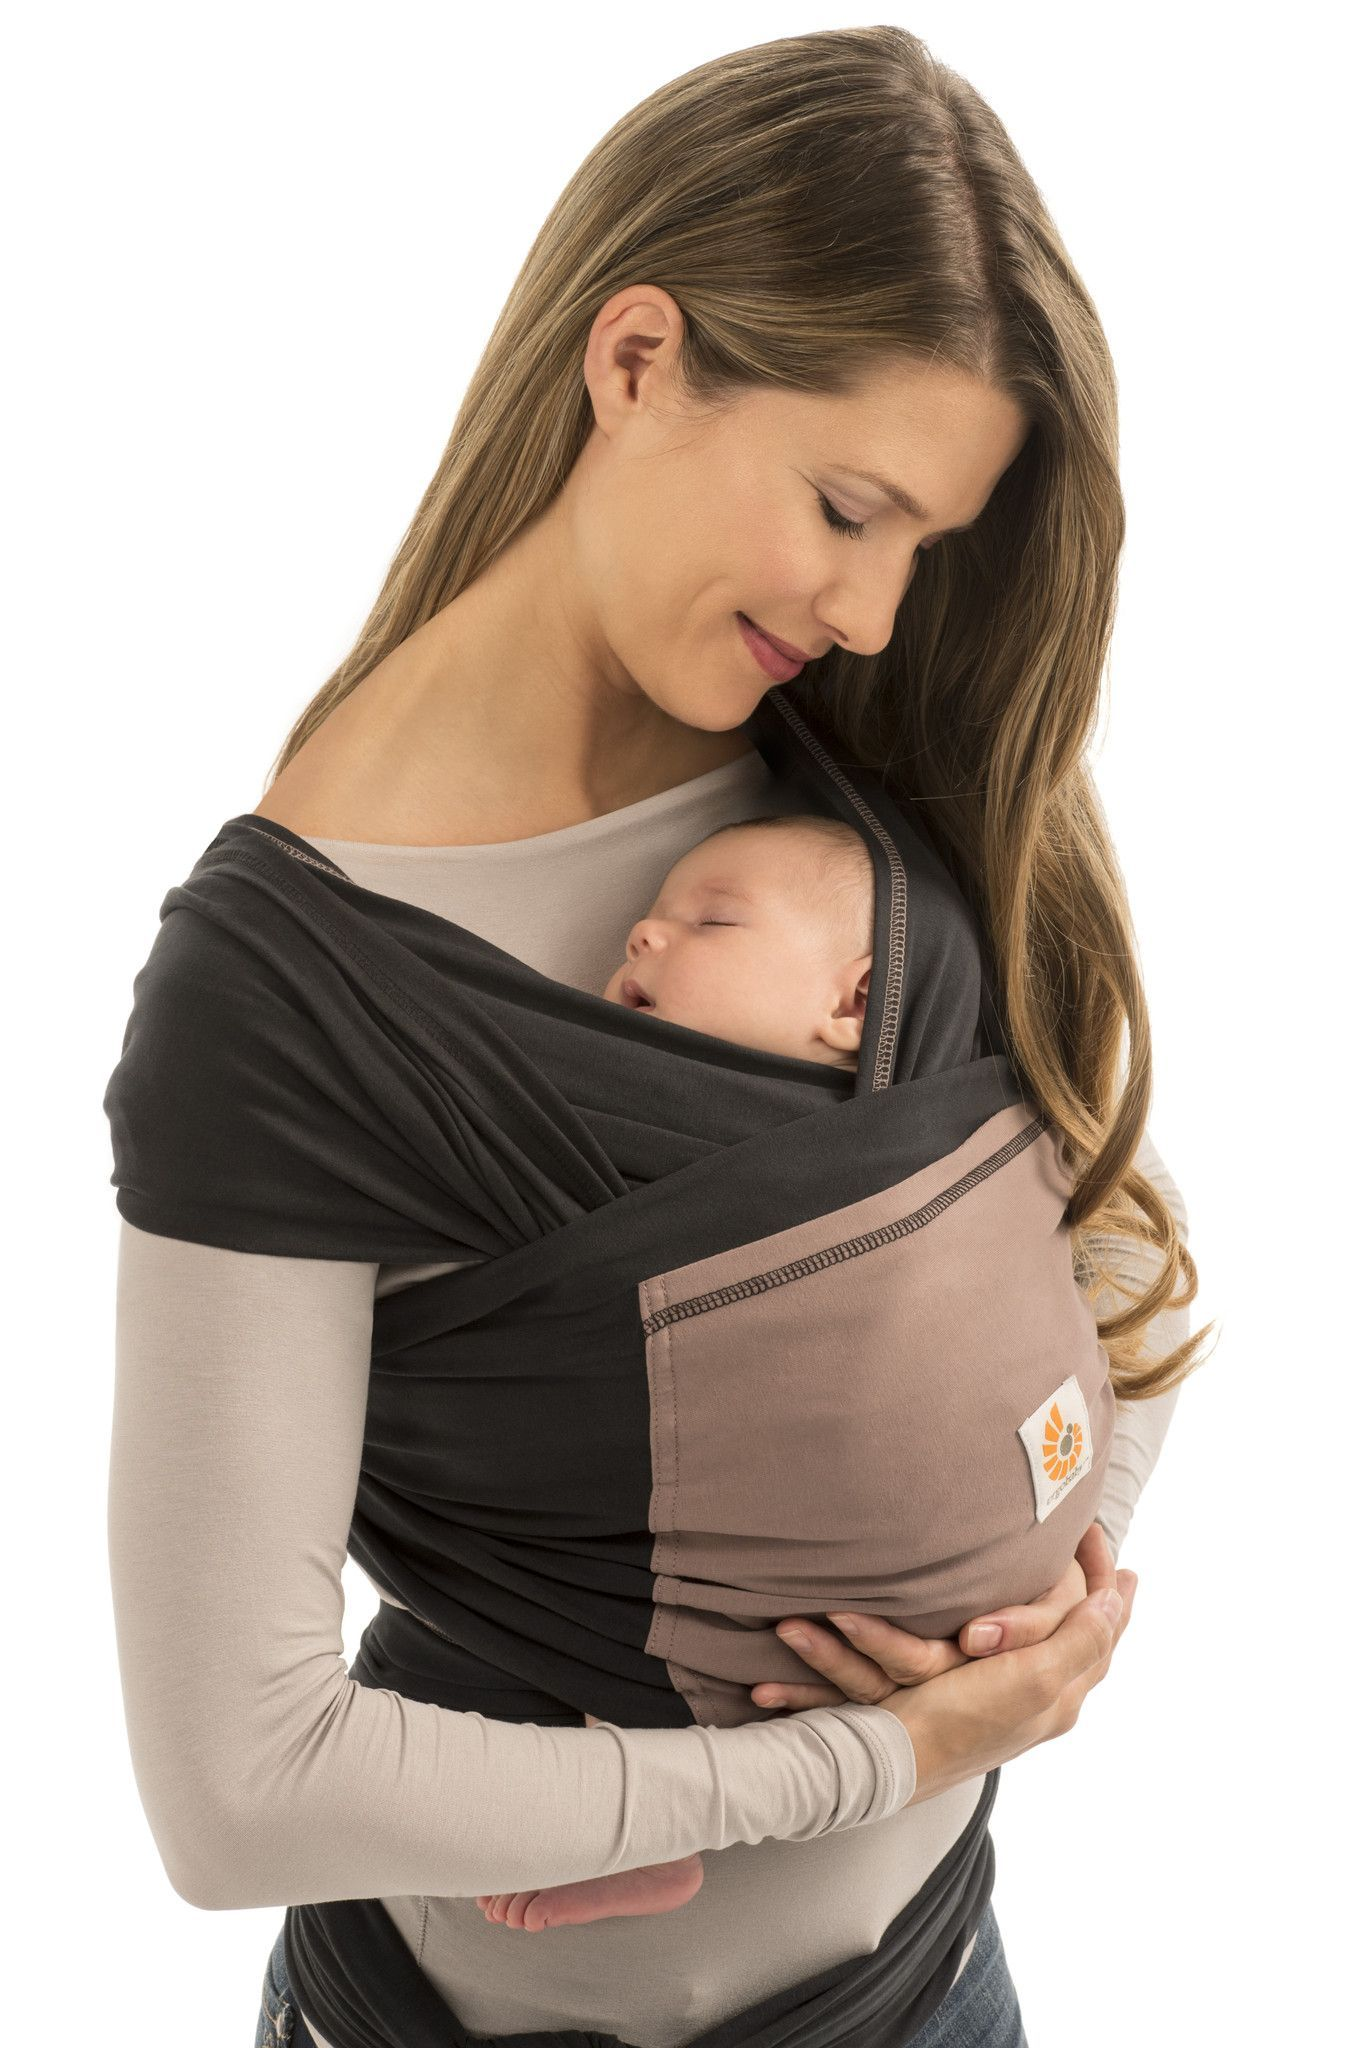 Made from strong 4D Stretch™ material the Ergobaby Baby Wrap flexes in all directions for the perfect fit with the right amount of stretch making it easy